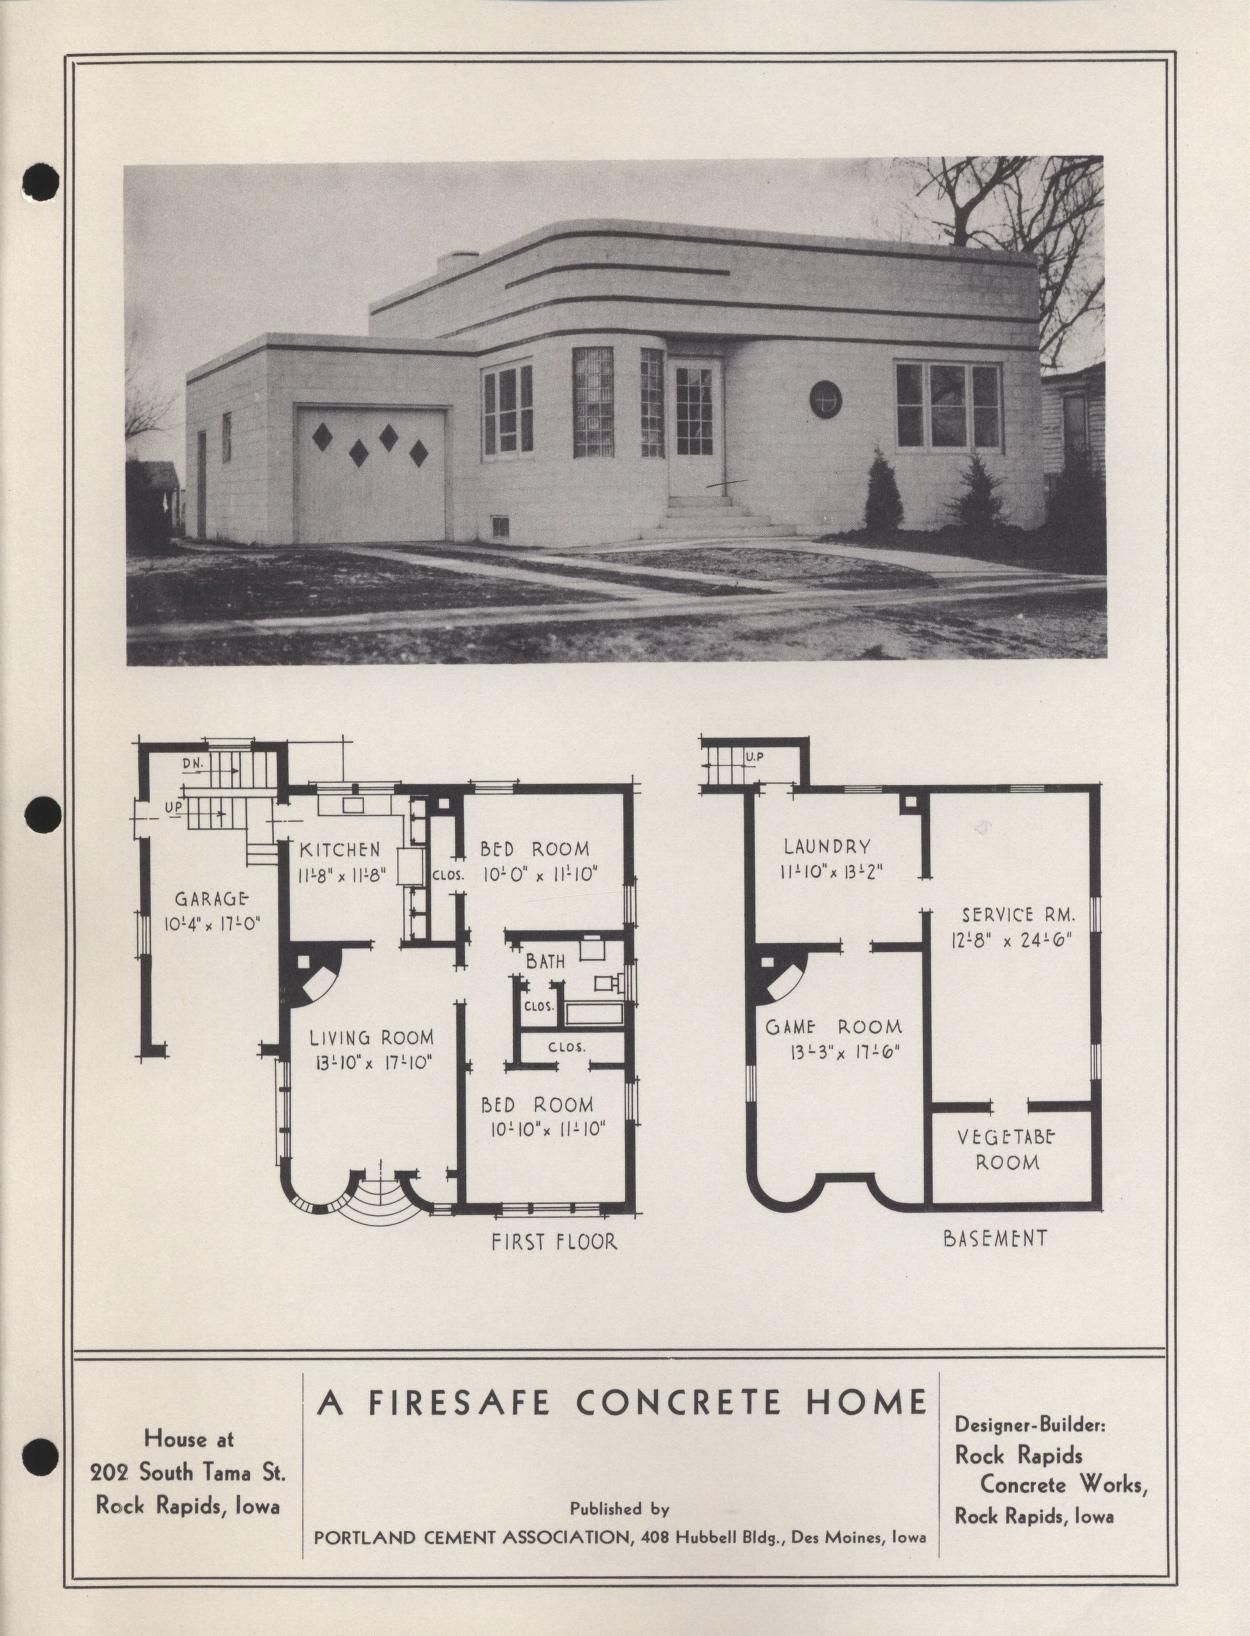 Iowa Conrete Houses Portland Cement Assoc Free Download Borrow And Streaming Internet Archive Concrete Houses Streamline Moderne Architecture Art Deco Buildings